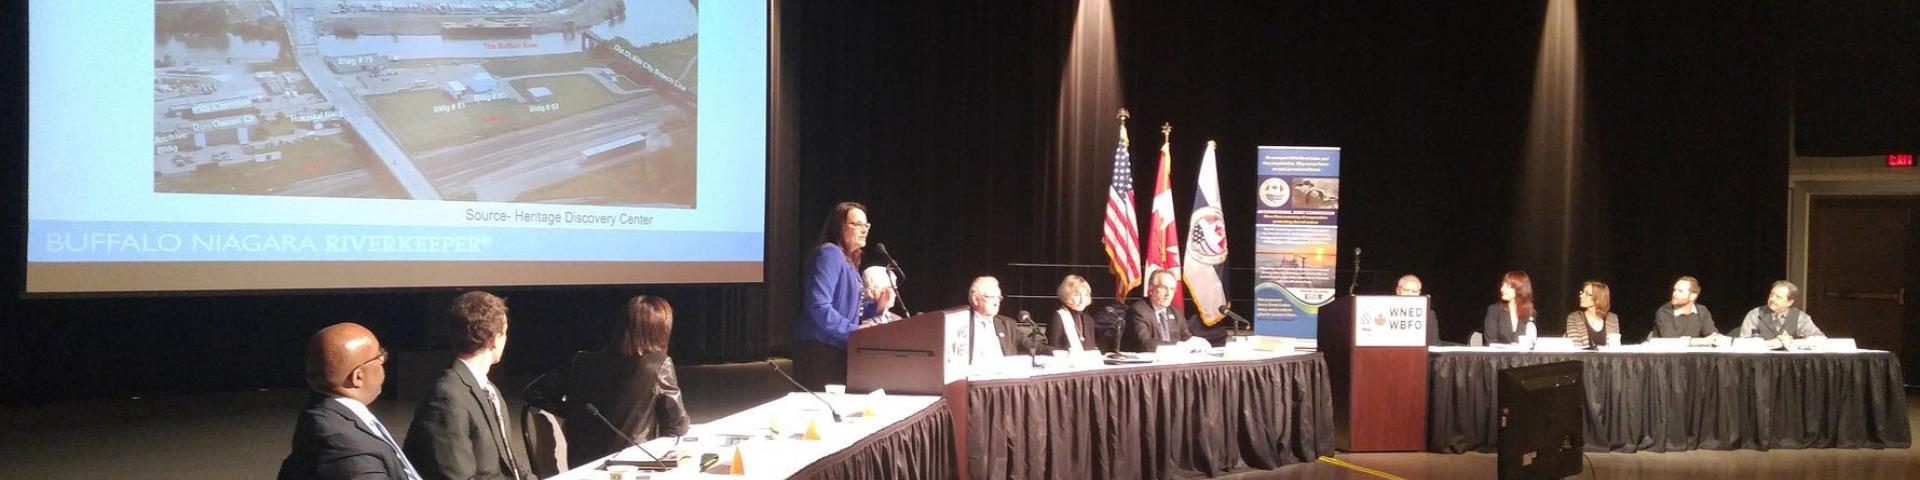 Image of head table during a presentation at the TAP Public Meeting in Buffalo, NY